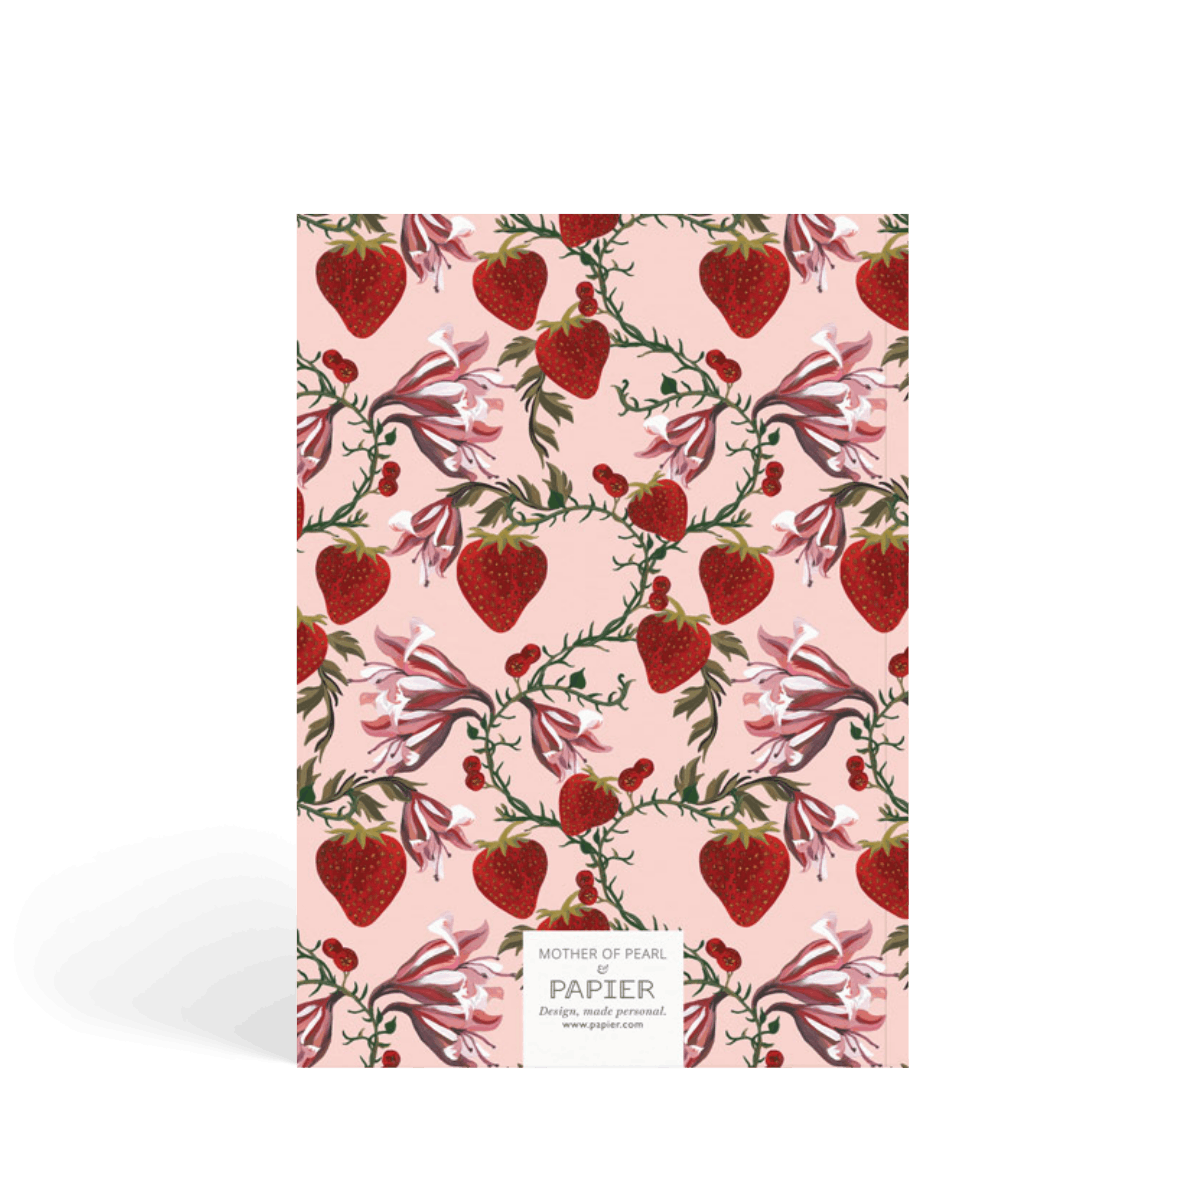 Https%3a%2f%2fwww.papier.com%2fproduct image%2f45390%2f5%2fstrawberry floral 11253 back 1535028391.png?ixlib=rb 1.1